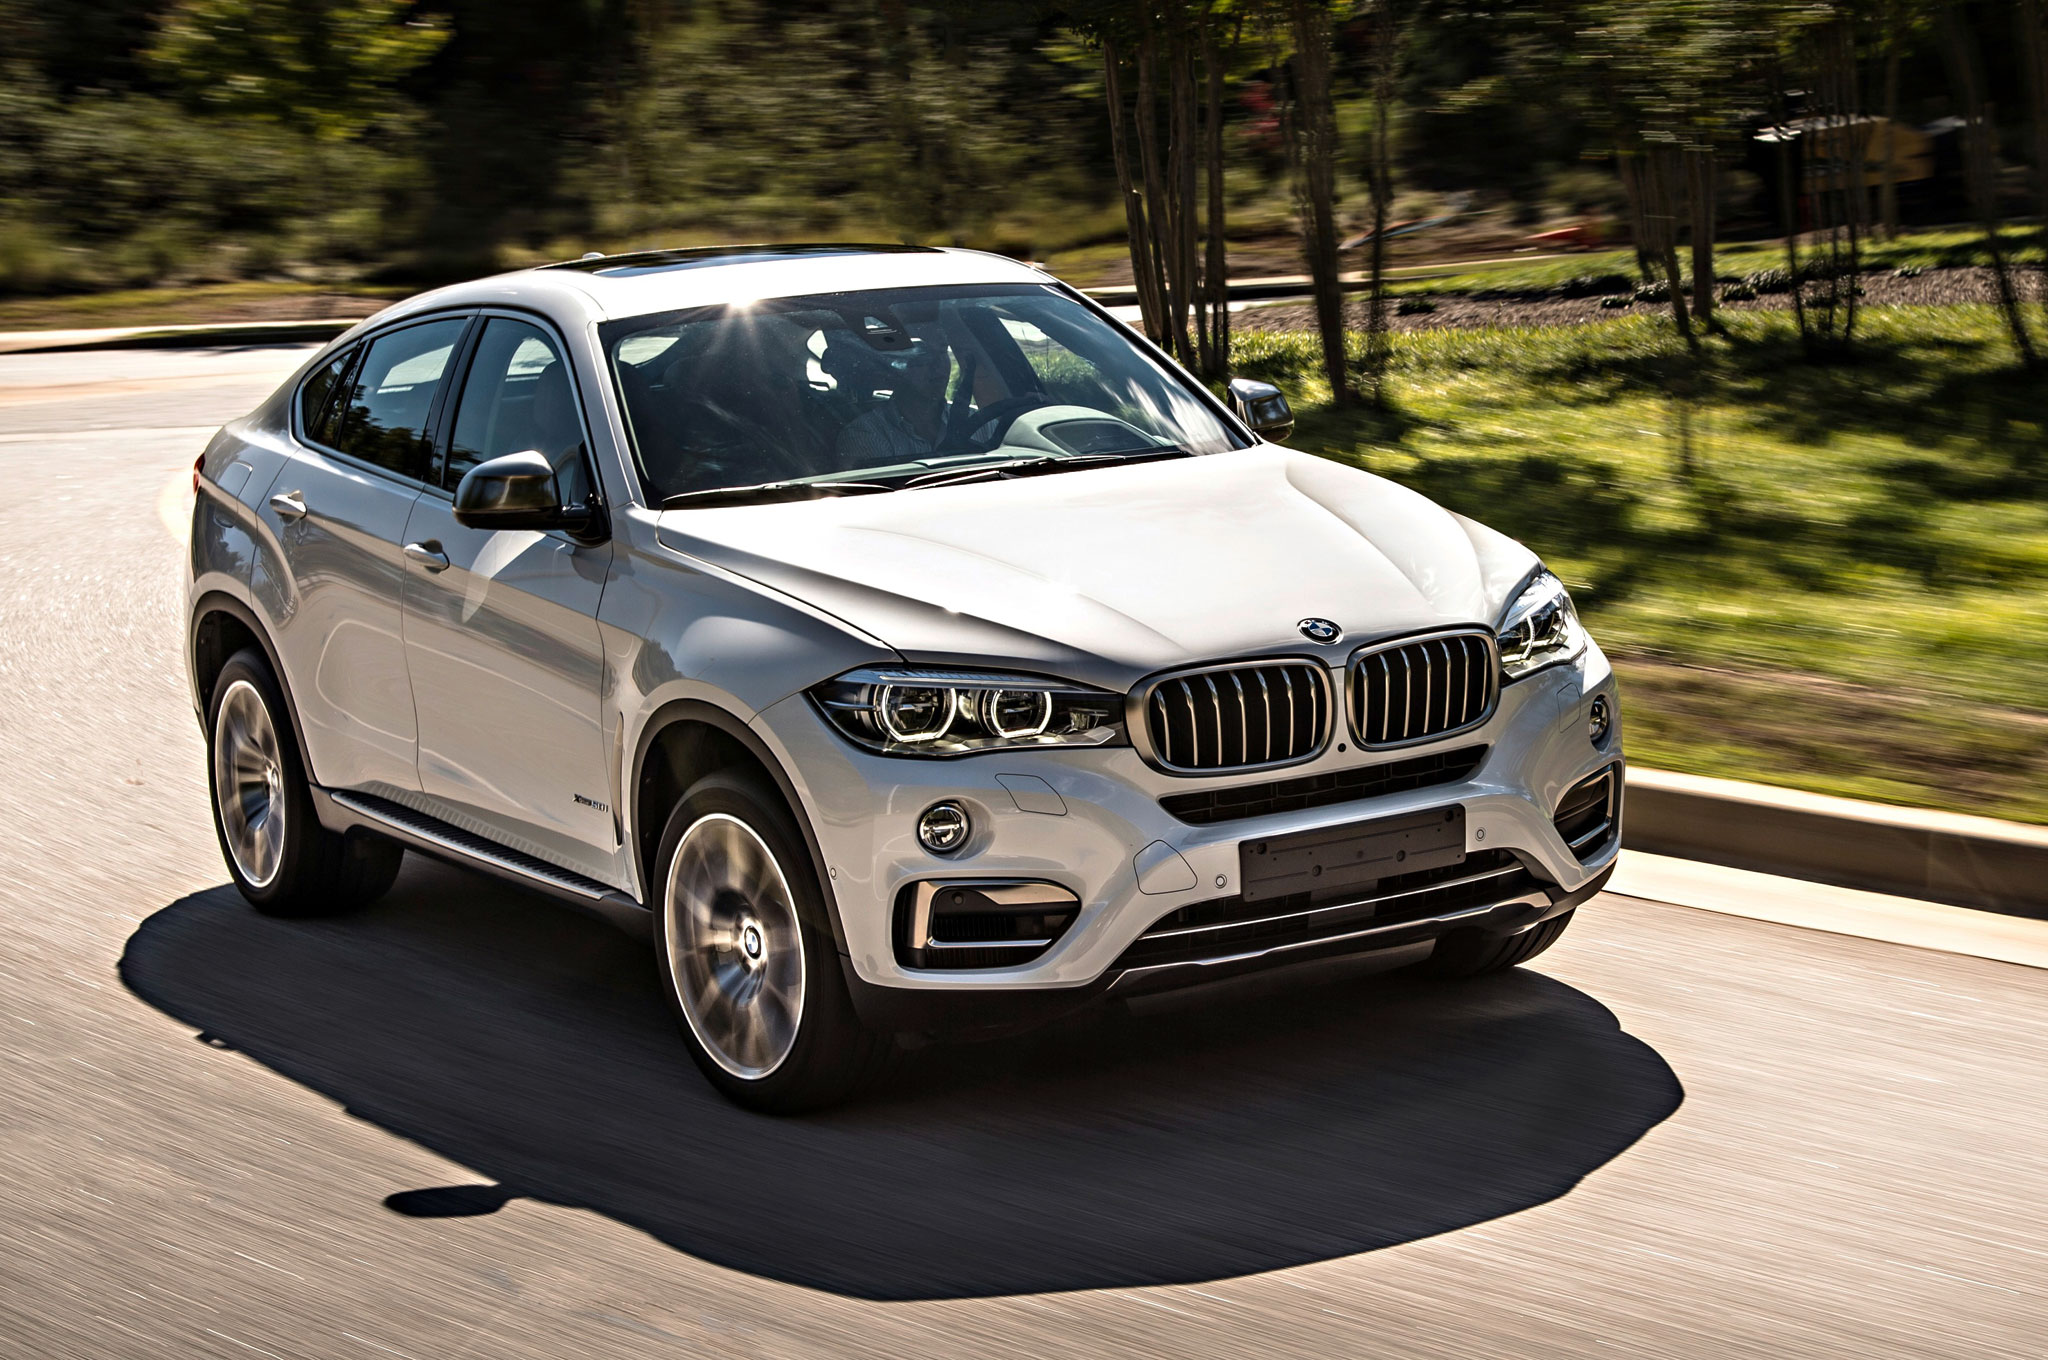 Image result for BMW X6